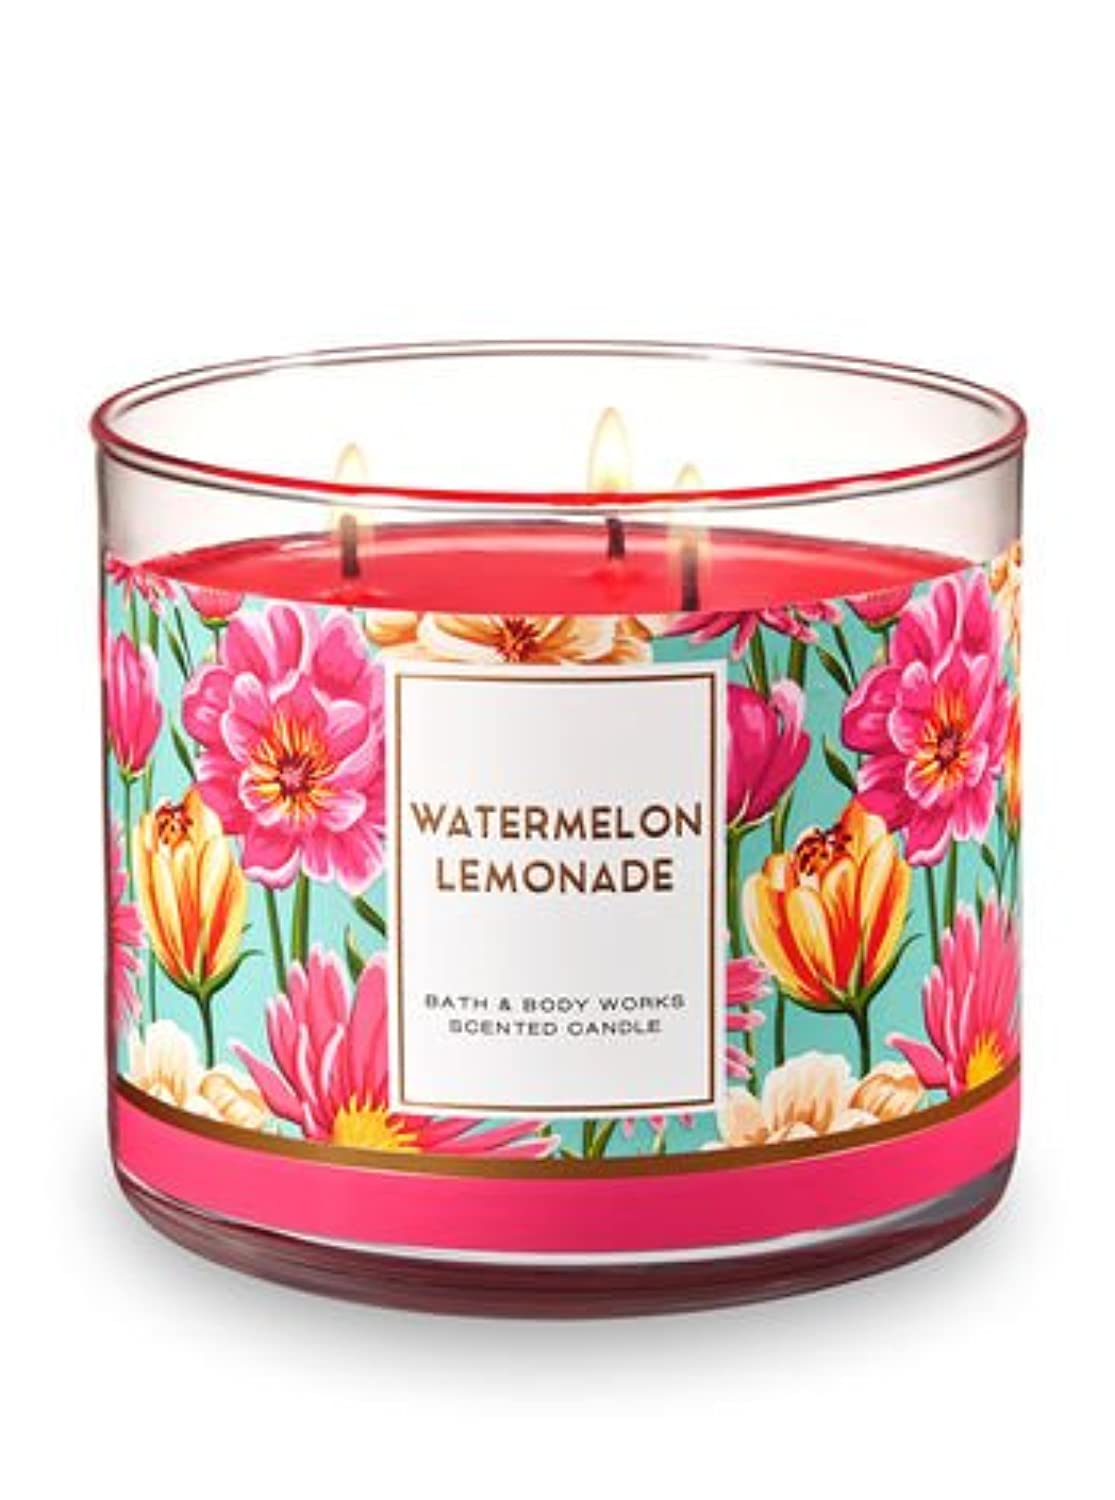 バースト優雅クスクスBath and Body Works 3?Wick Scented Candle Watermelon Lemonade 14.5オンス